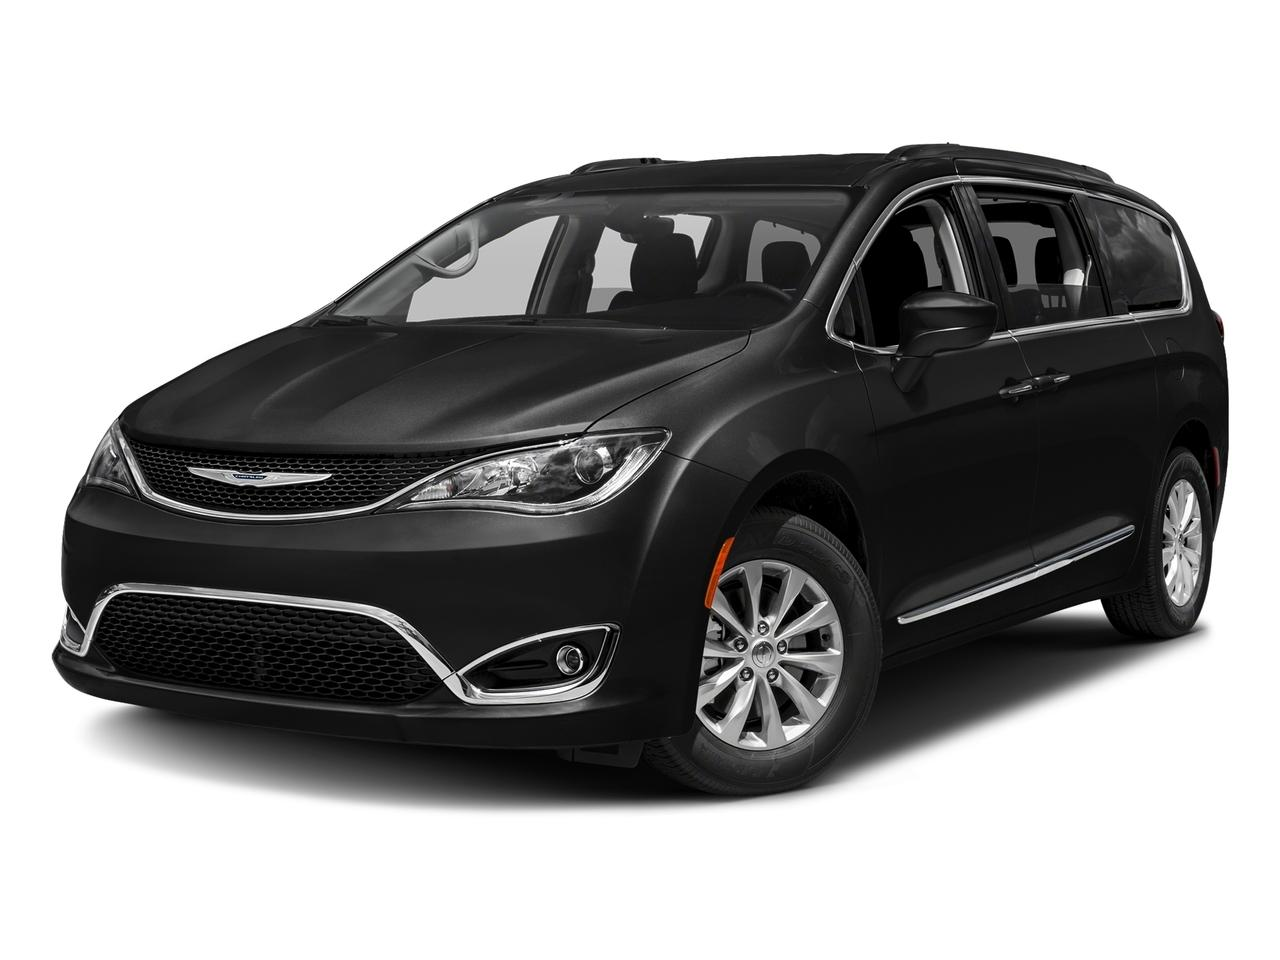 2017 Chrysler Pacifica Vehicle Photo in Prescott, AZ 86305